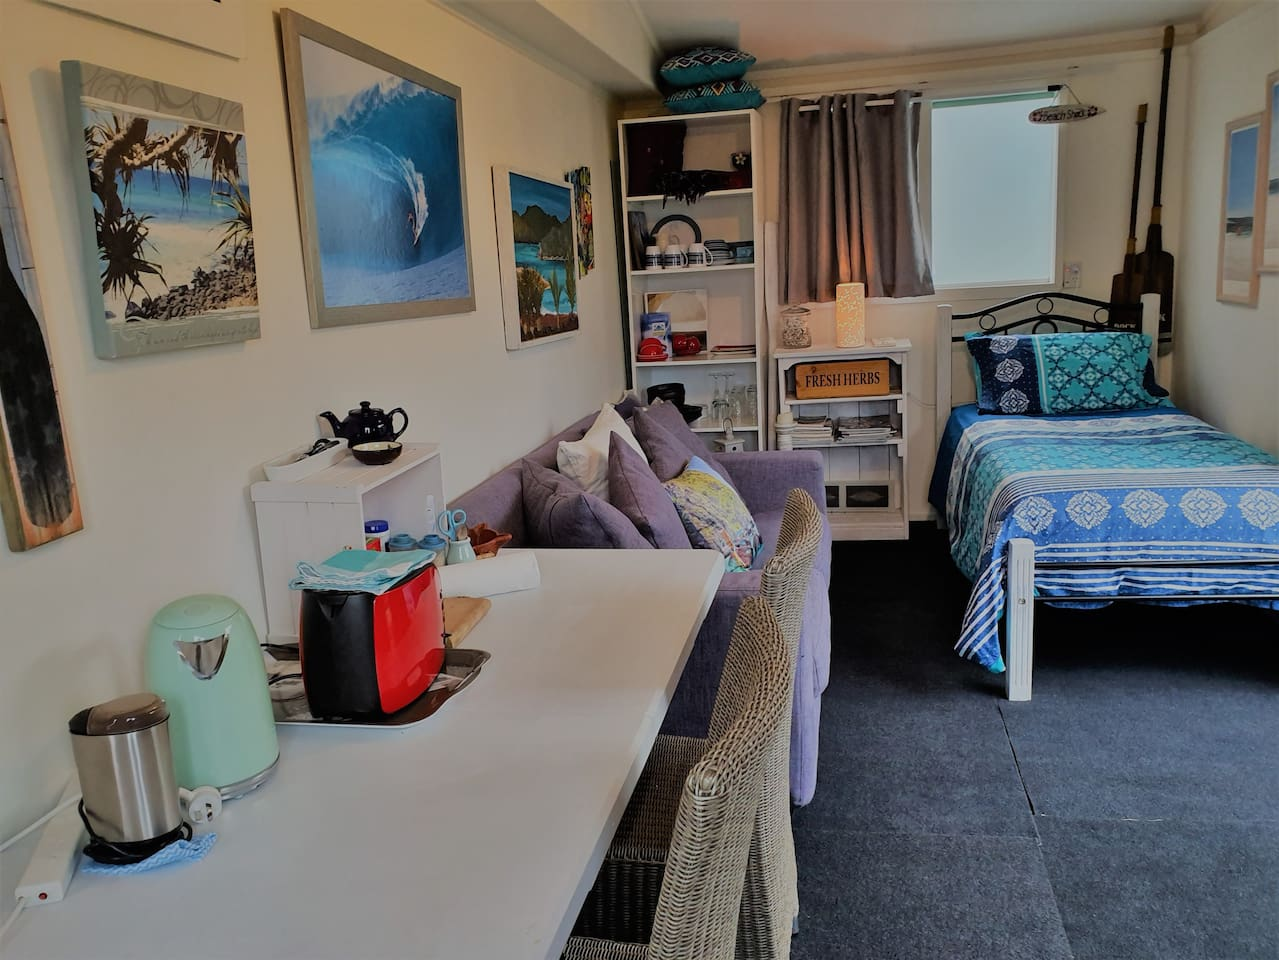 The Lake Room is a private, light & warm space just across the road from Lake Rotoma. A camping toilet is located in the adjacent space with the main bathroom in the house. Big ranch slider opens to let the sun/air in. Heating in winter, a fan too.